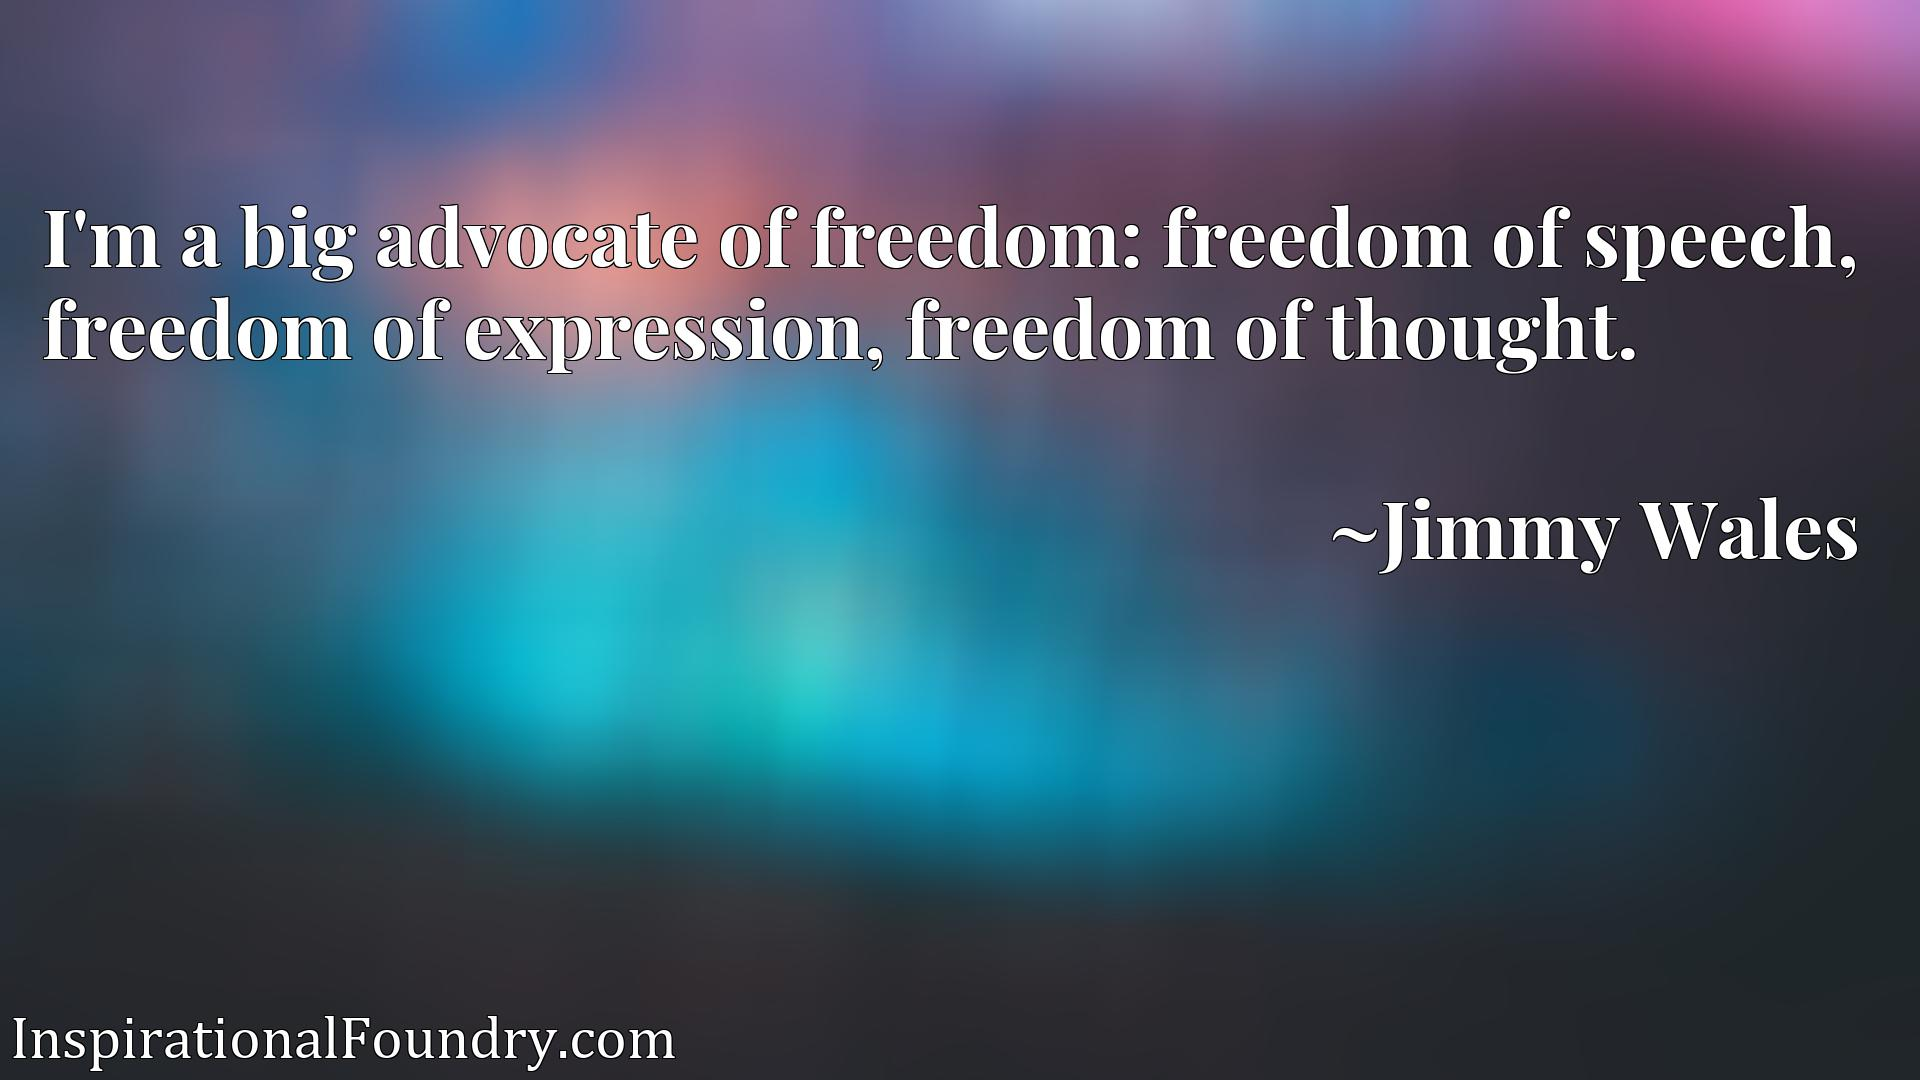 I'm a big advocate of freedom: freedom of speech, freedom of expression, freedom of thought.